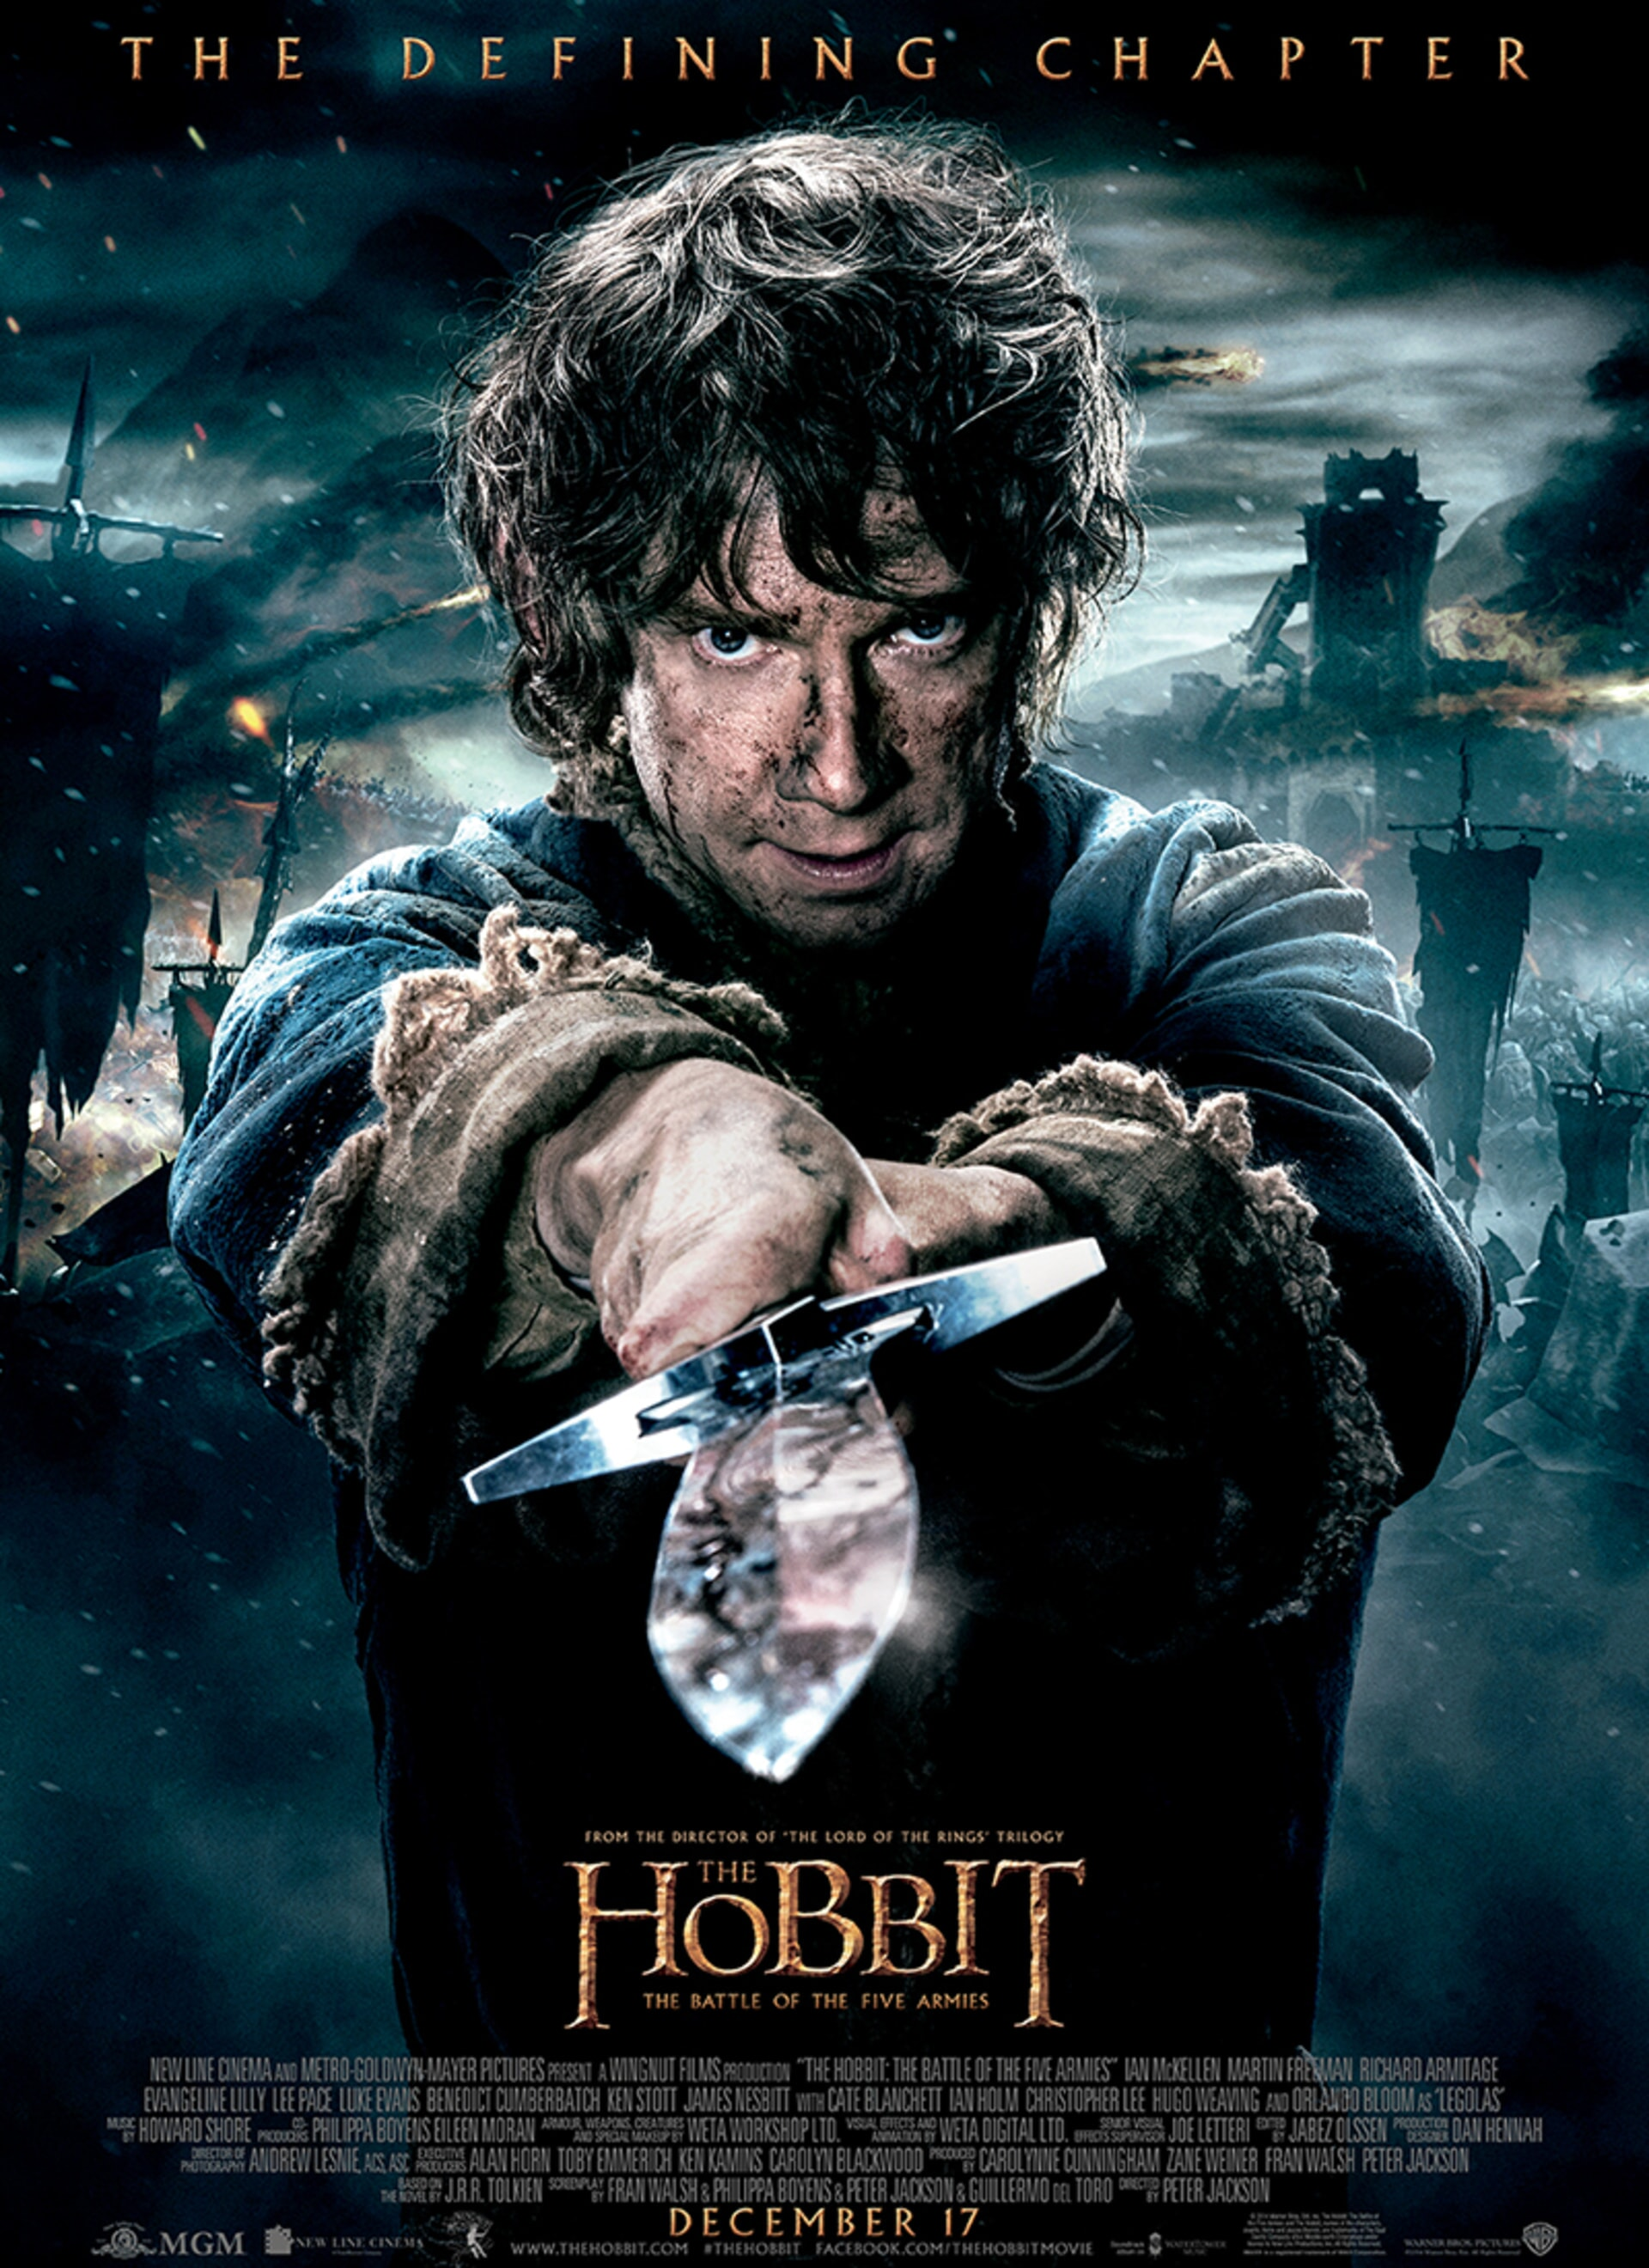 The Hobbit: The Battle of the Five Armies - Poster 1